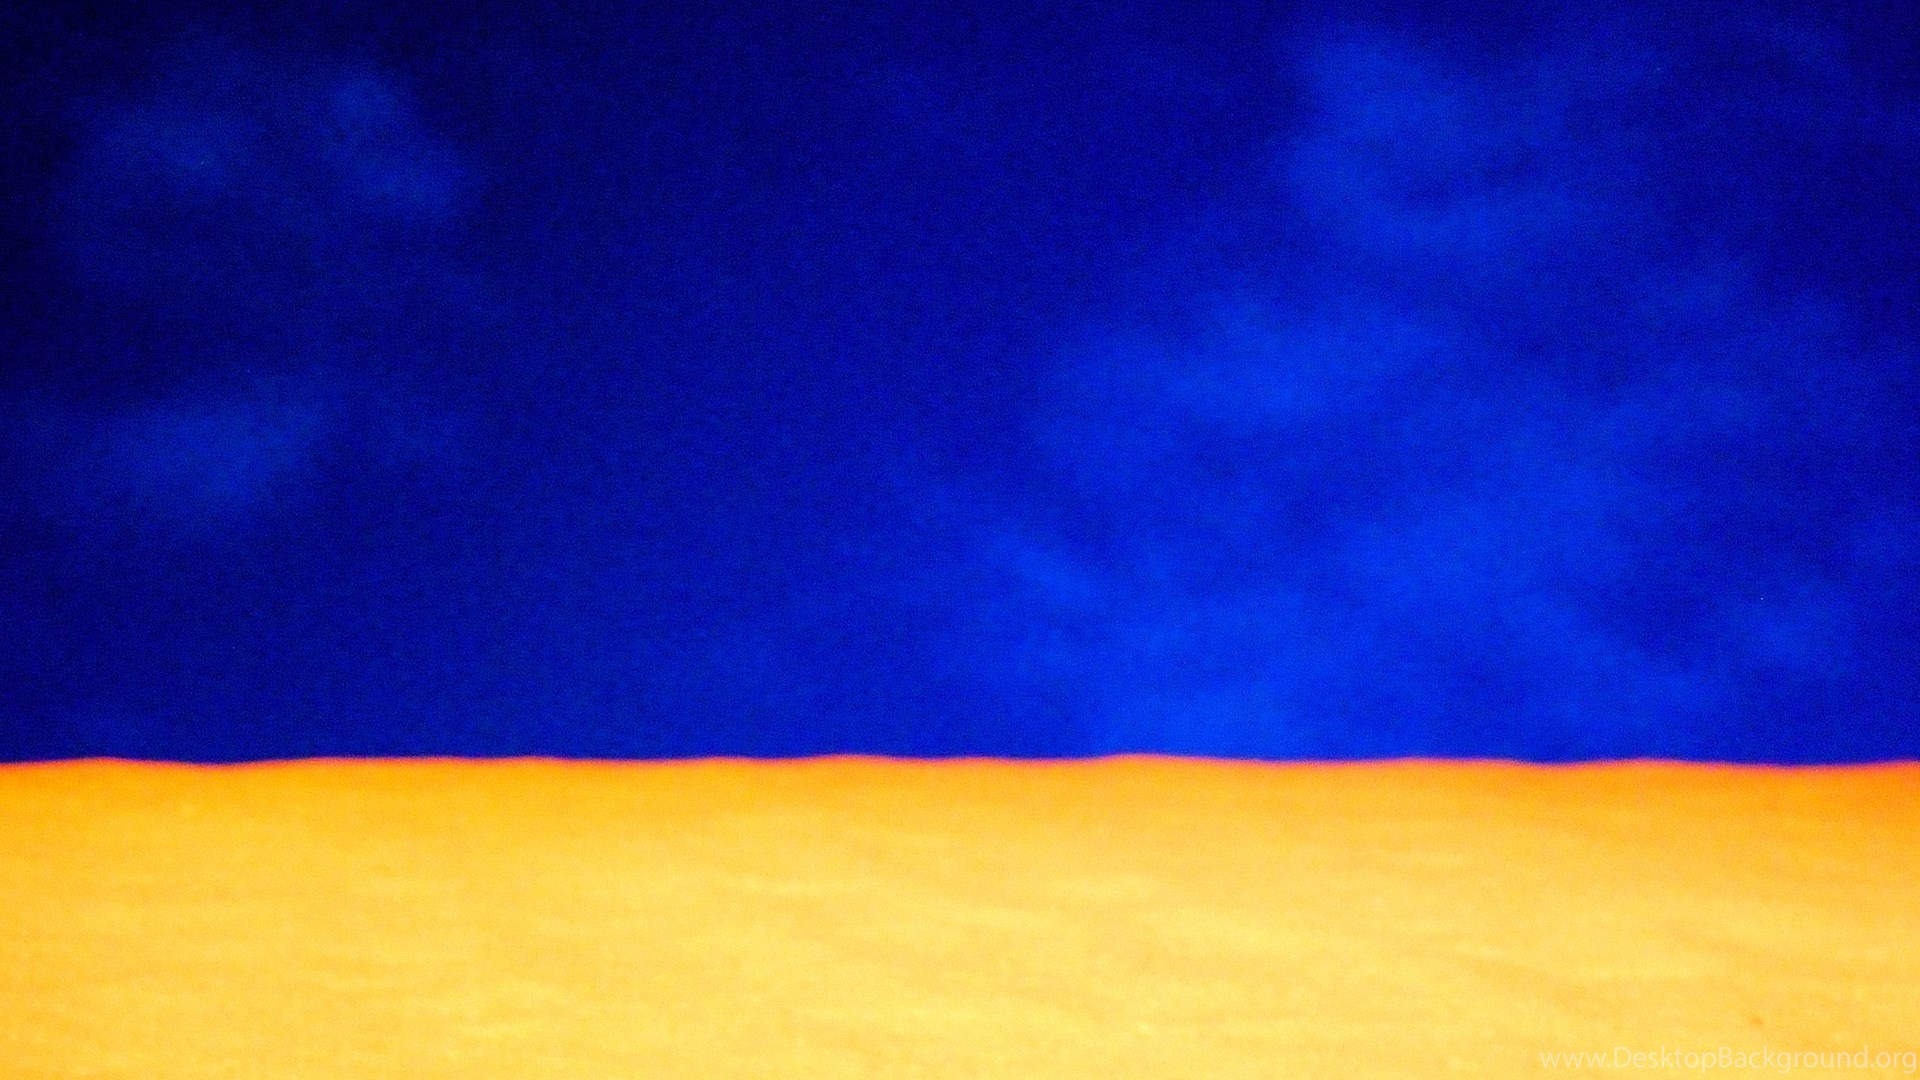 Abstract Wallpapers Abstract Blue And Yellow Wallpapers 35841 Desktop Background